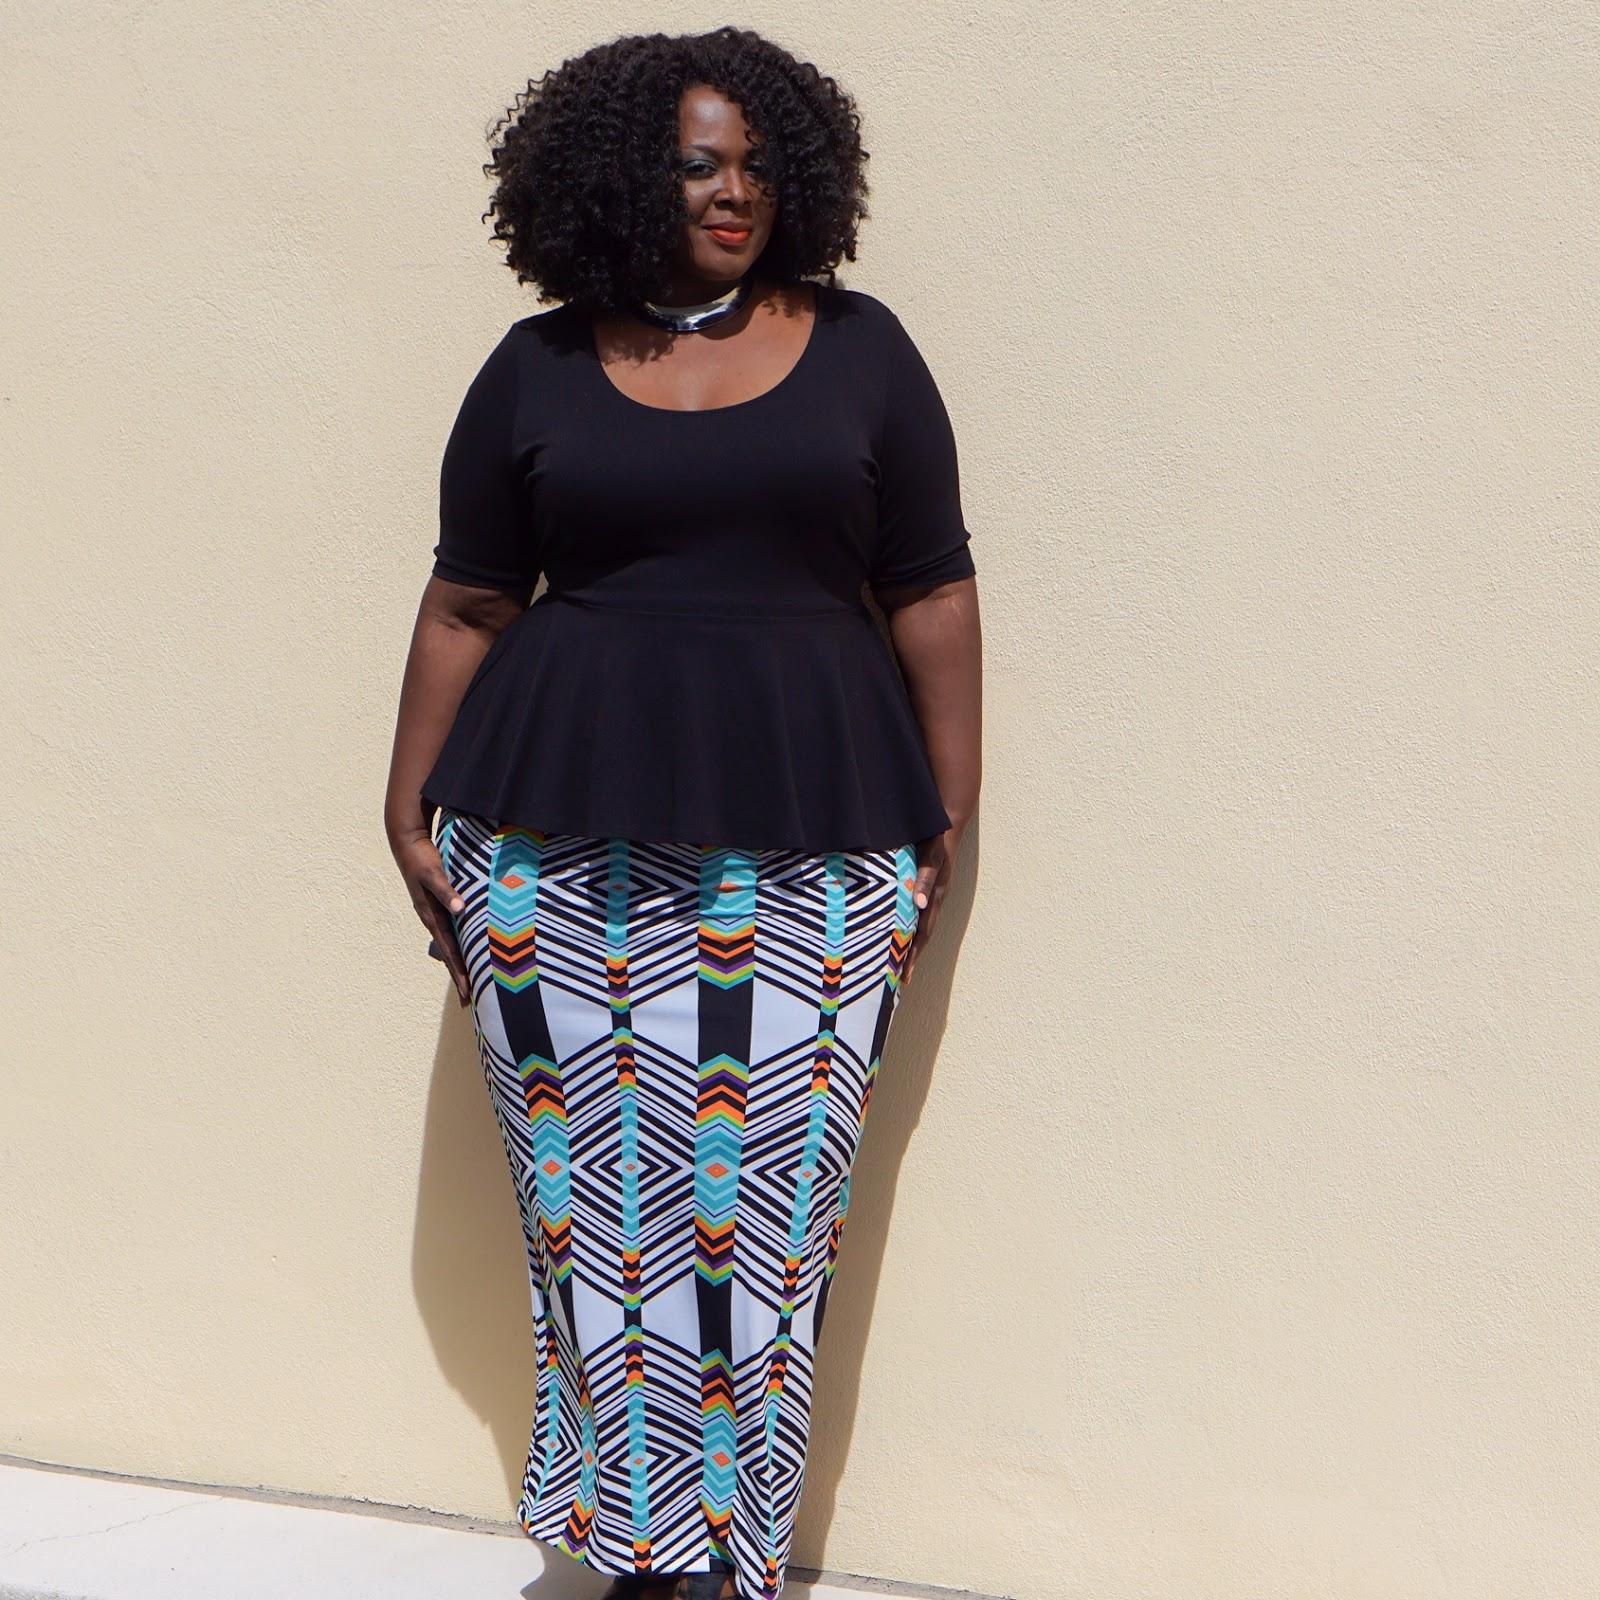 plus size maxi skirts, plus size clothes, plus size skirts, tru diva designs skirts